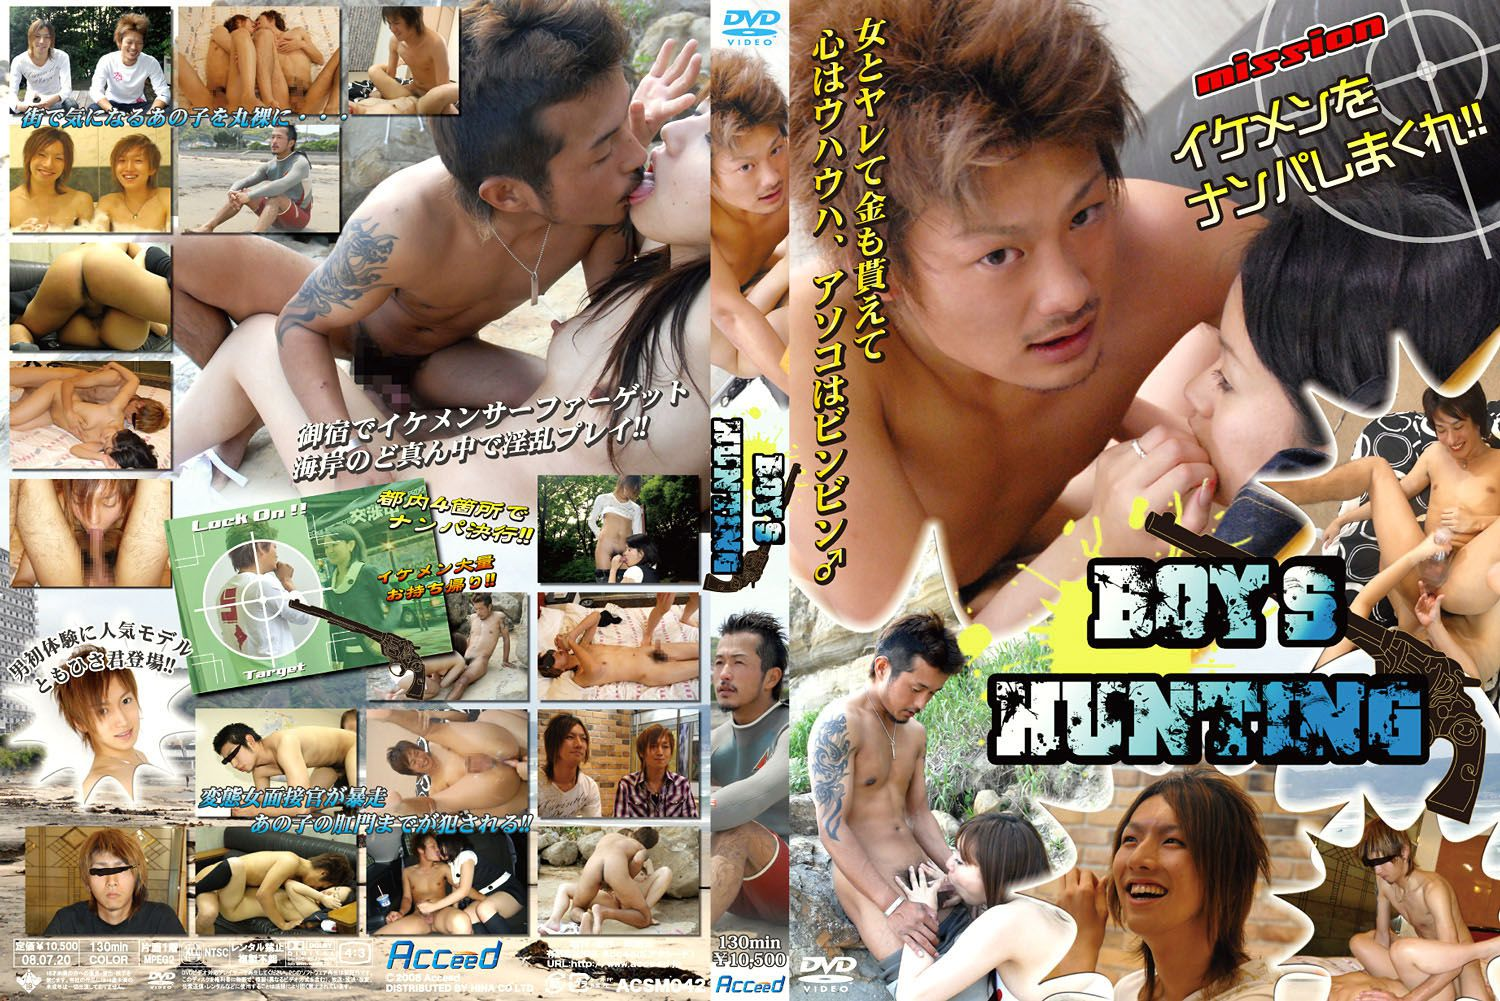 [ACCEED] BOYS HUNTING